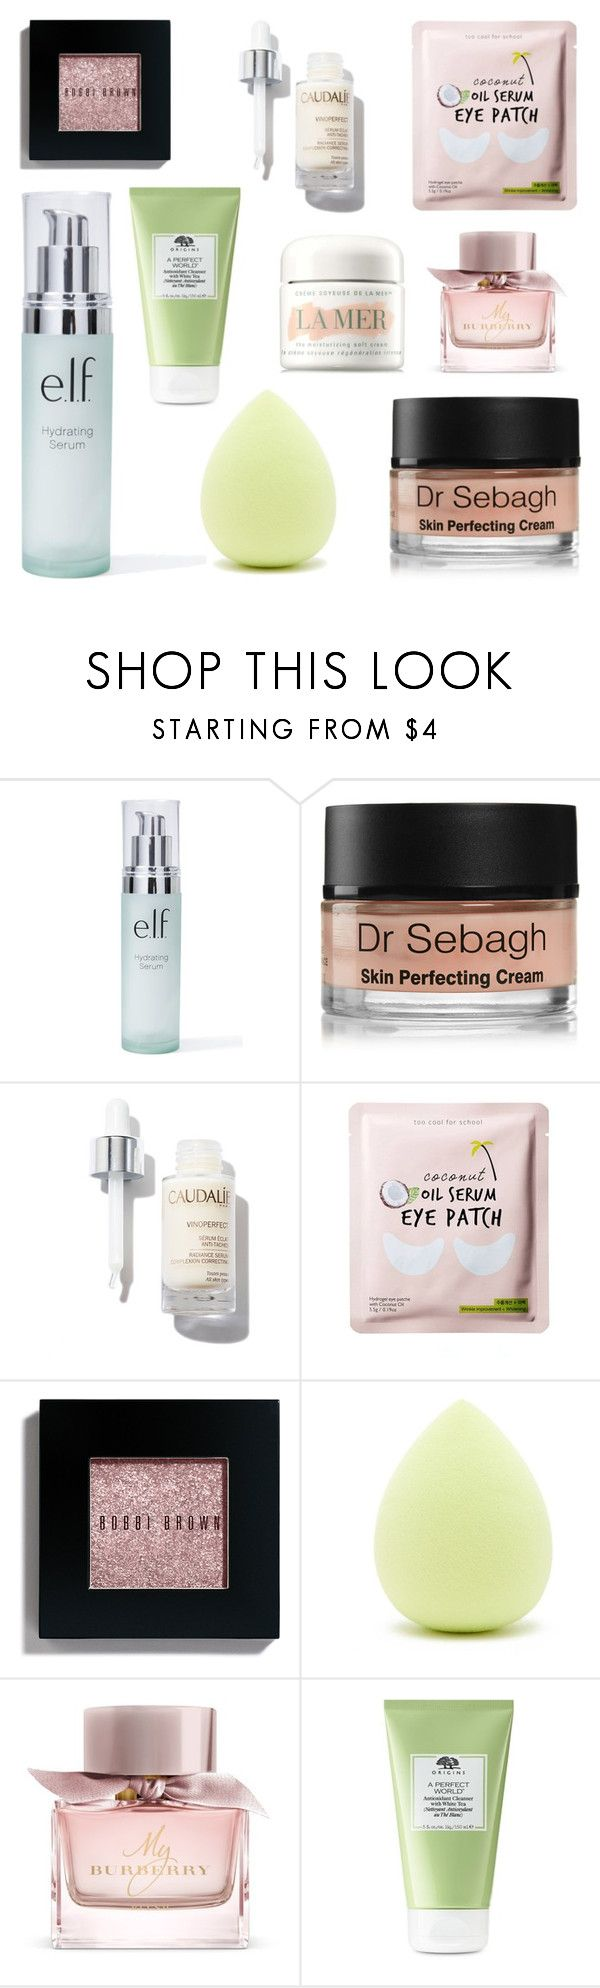 """""""Random Beauty Peoducts 2"""" by pure-vnom ❤ liked on Polyvore featuring e.l.f., Dr. Sebagh, Bobbi Brown Cosmetics, Forever 21, Burberry, Origins and La Mer"""